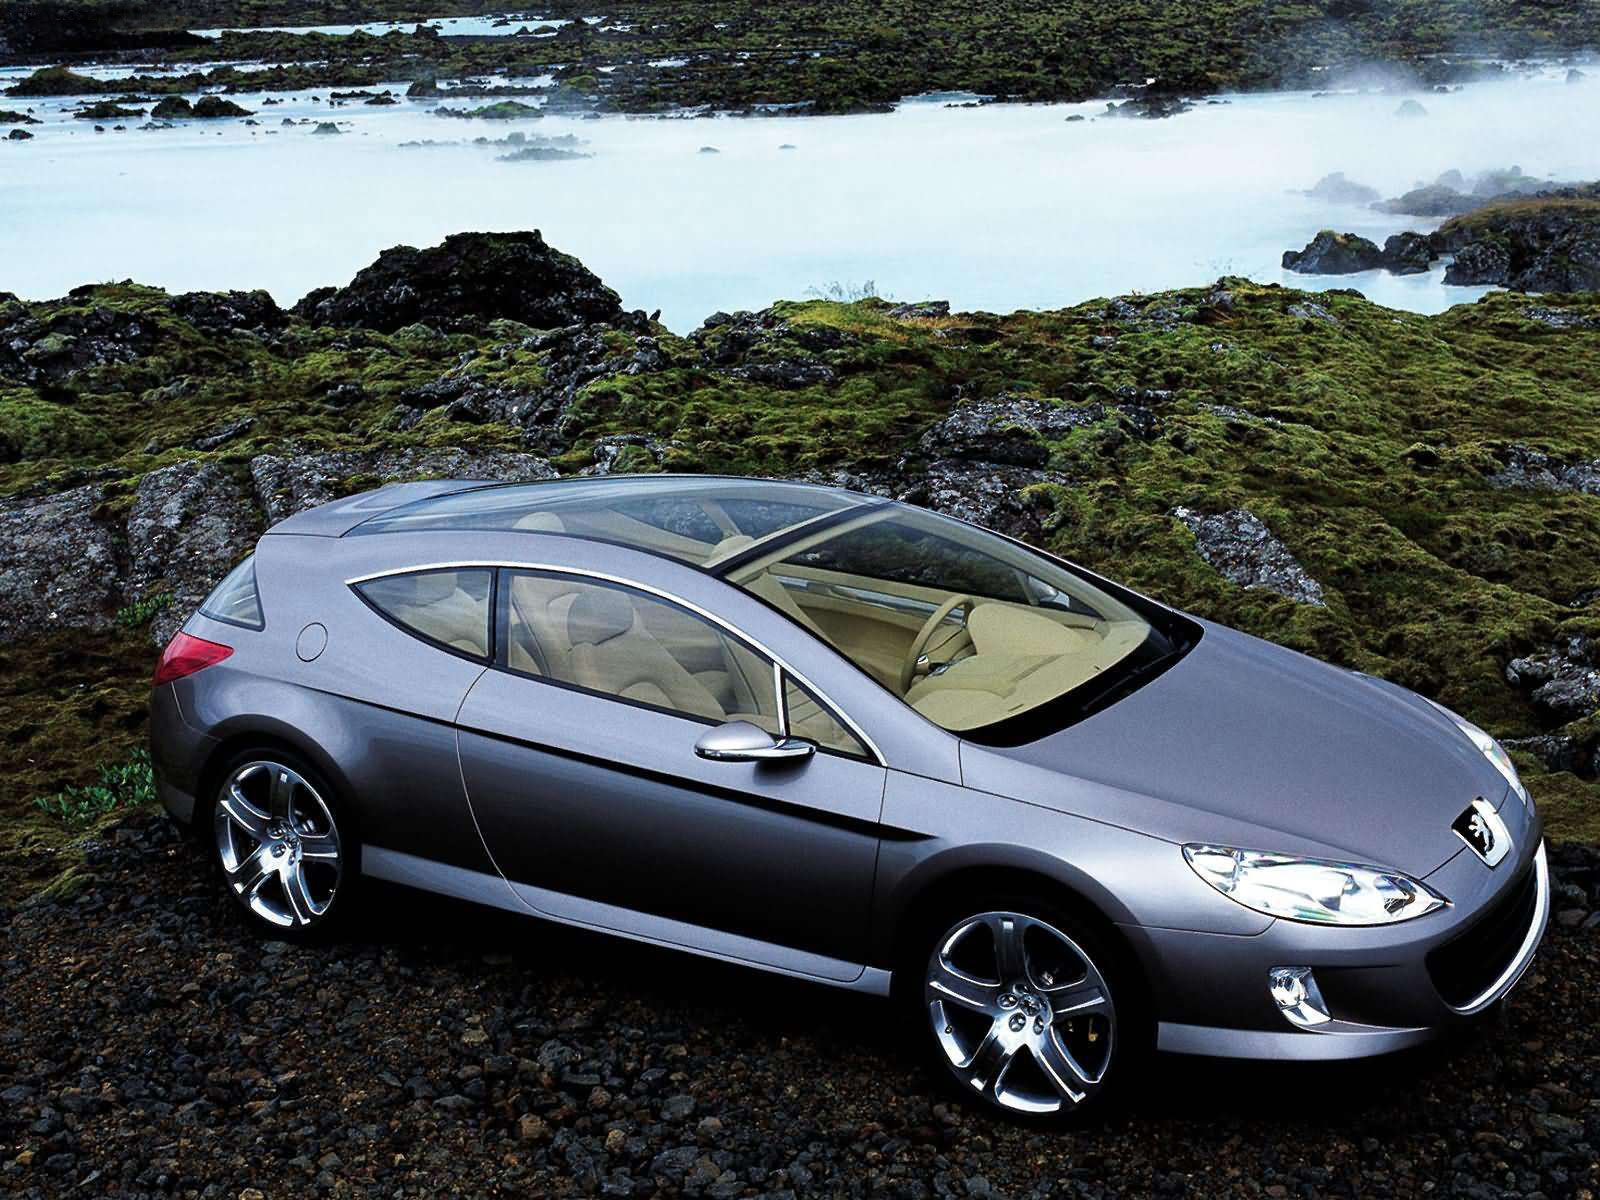 peugeot 407 coupe 2012 wallpaper #12